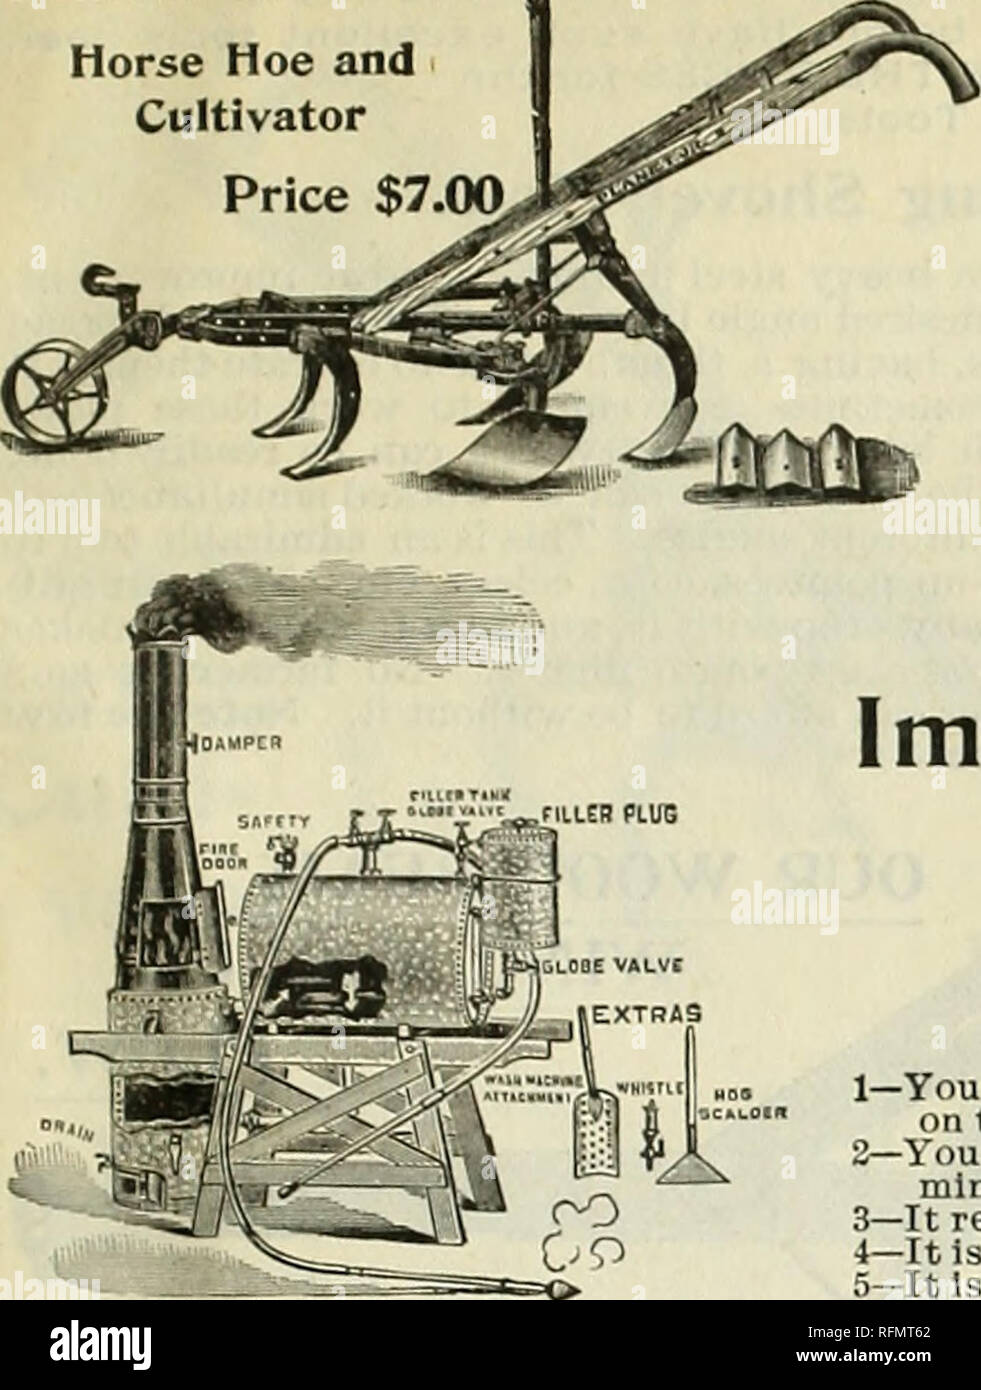 Leonard's catalogue of seeds & tools : 1899  Nursery stock